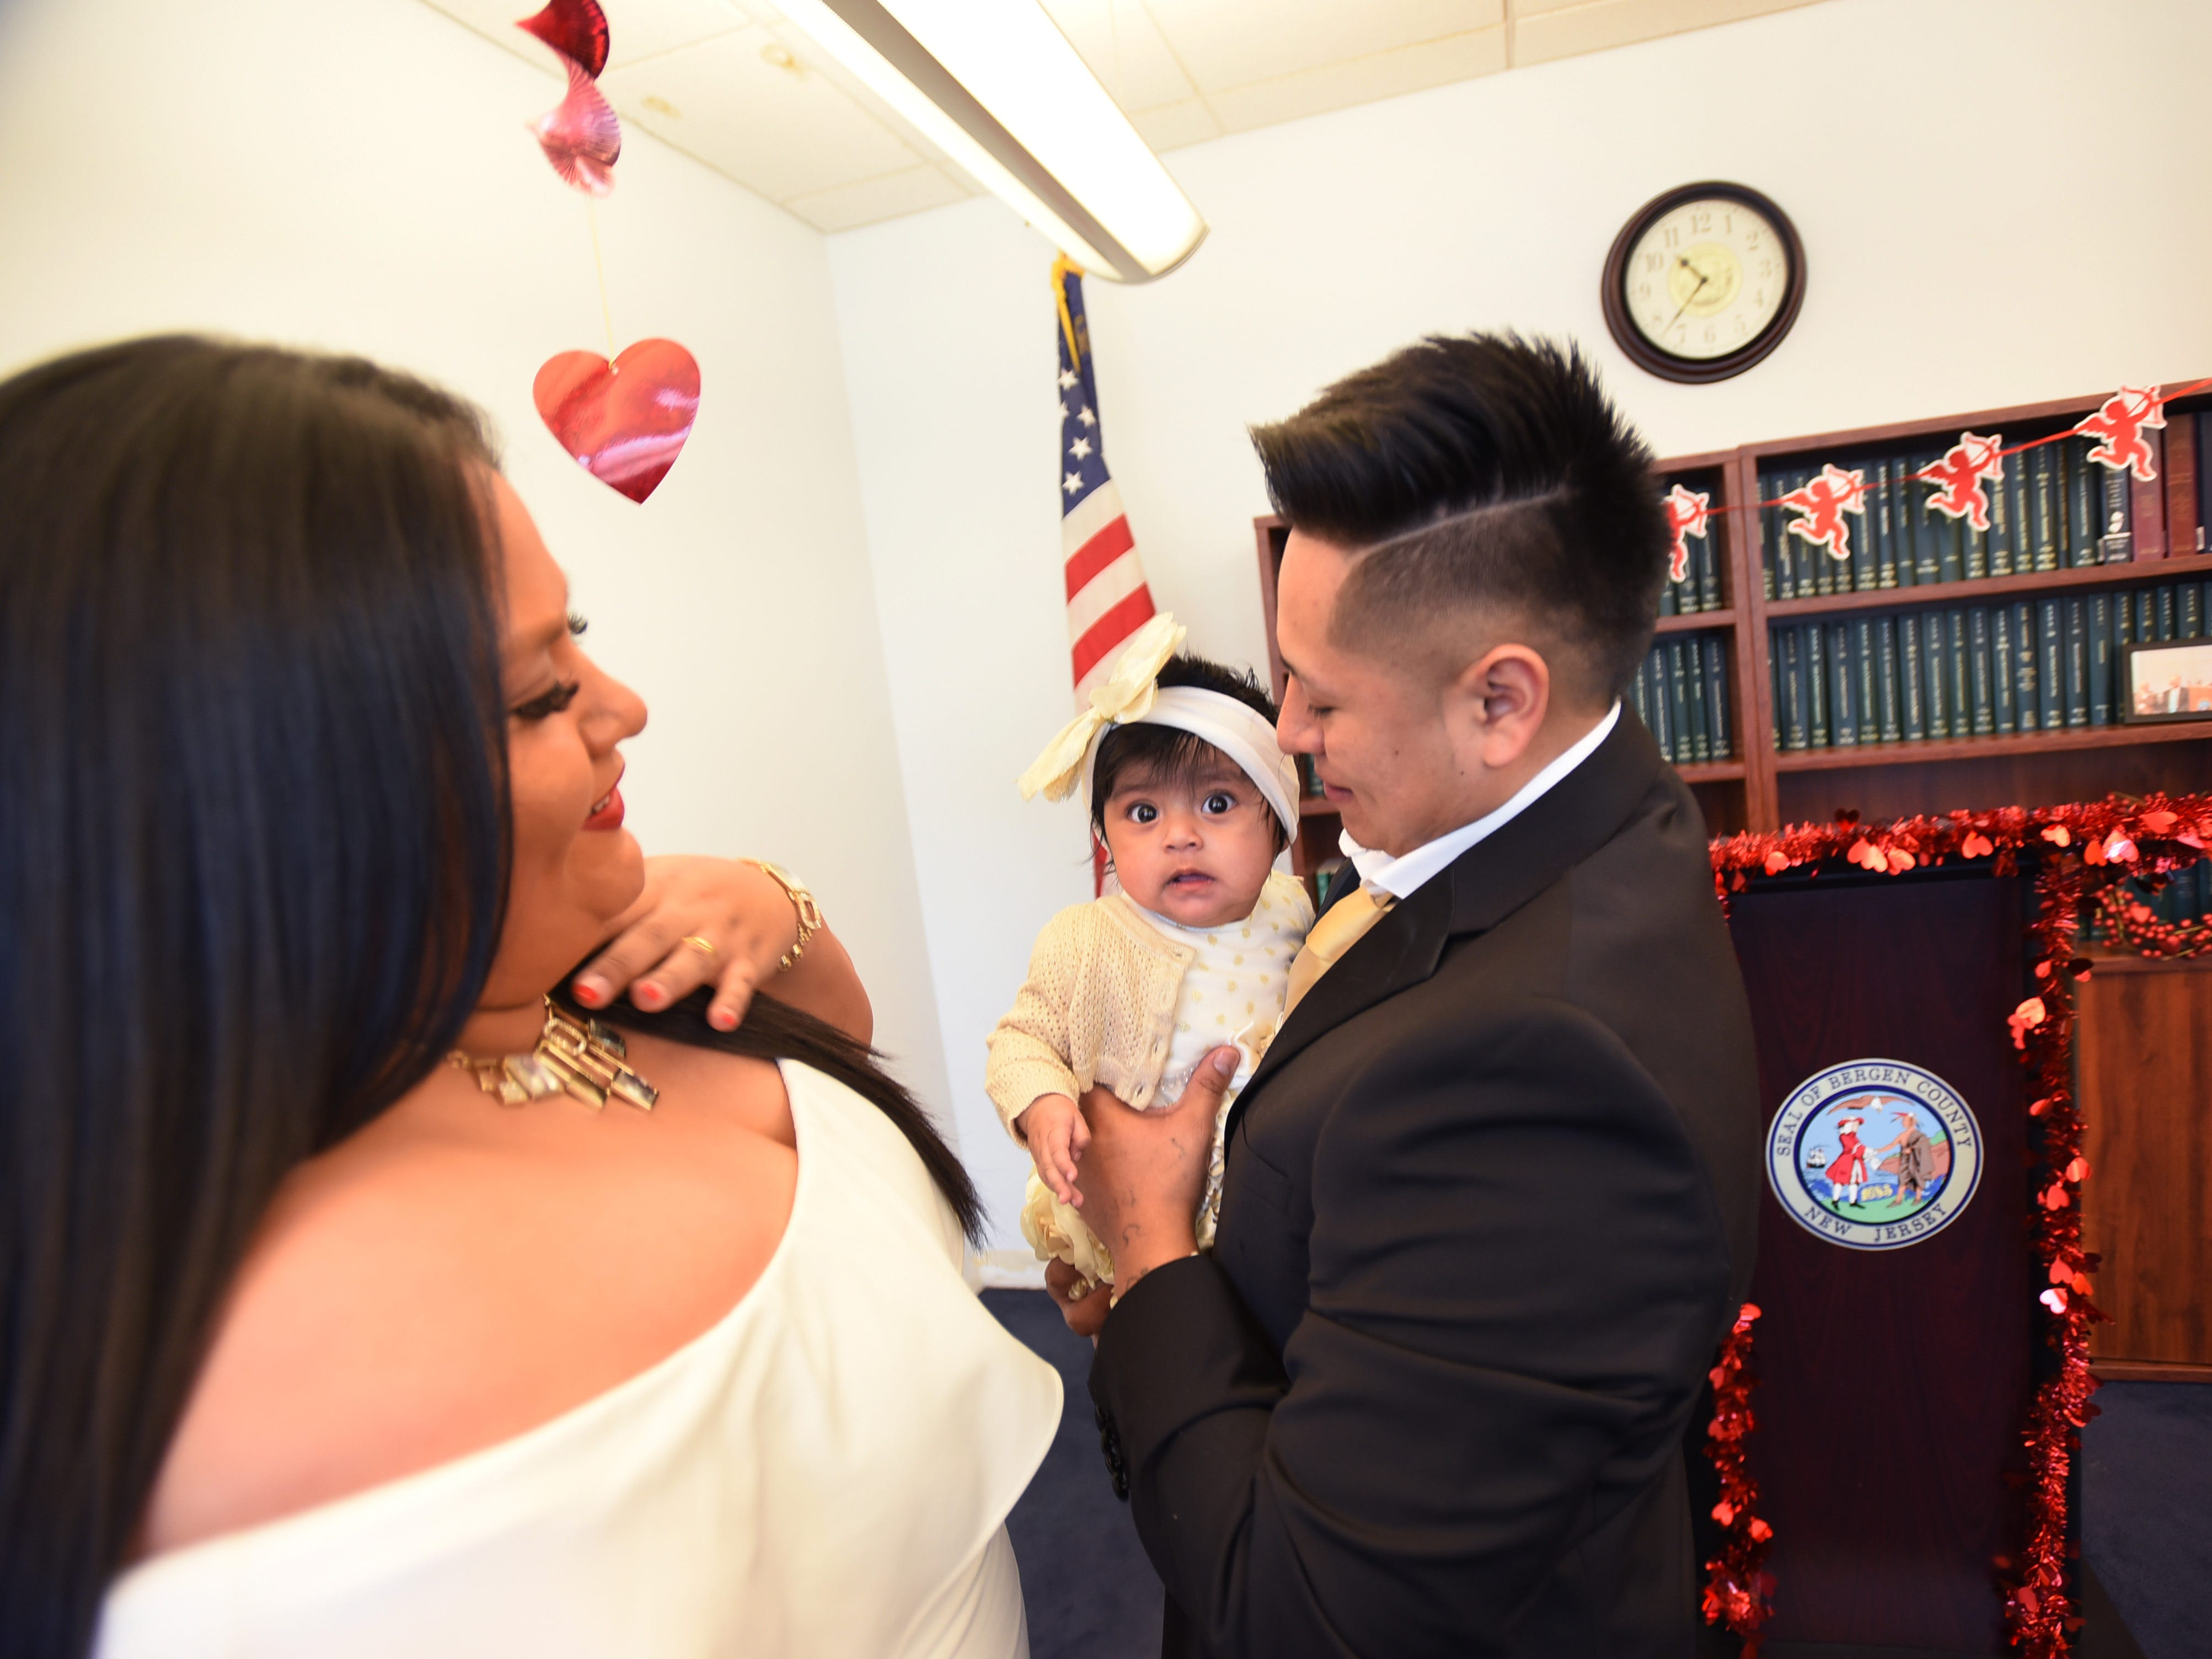 After being announced as a husband and a wife, Yesenia Urgiles and Cesar Guartan of Hackensack, look at their five month daughter Lilian following their wedding ceremony, located at Bergen County Plaza in Hackensack on 02/14/19.